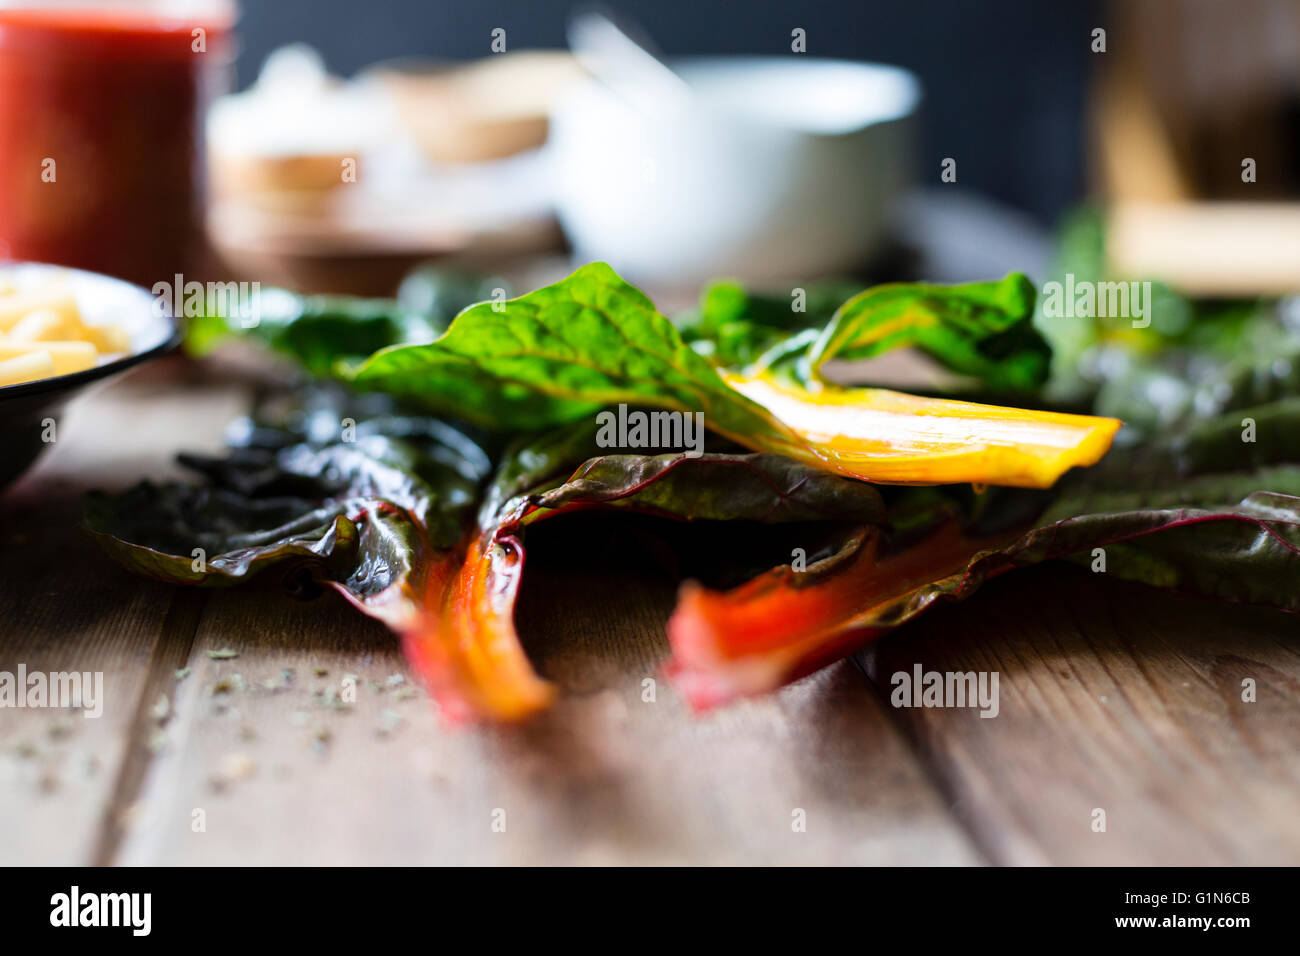 Chard vegetable stems - Stock Image